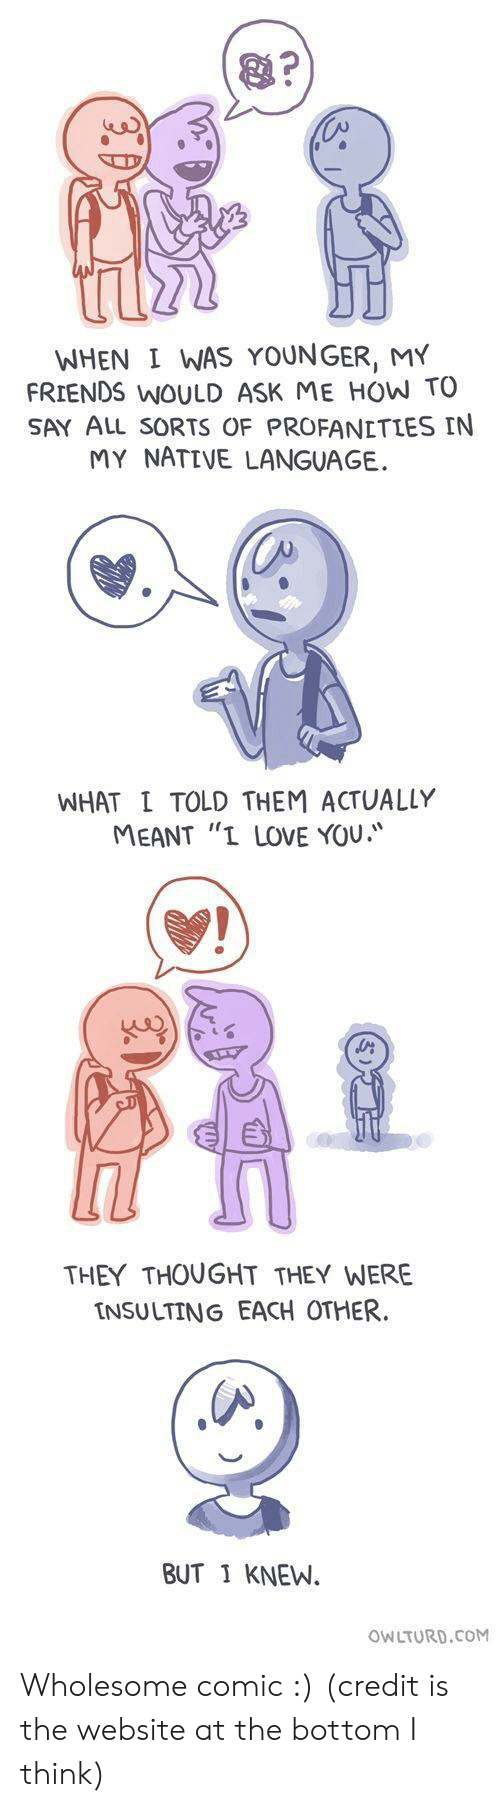 """Owlturd Com: WHEN I WAS YOUNGER, MY  FRIENDS WOULD ASK ME HOW TO  SAY ALL sORTS OF PROFANETLES IN  MY NATIVE LANGUAGE.  WHAT L TOLD THEM ACTUALLY  MEANT """"I LOVE YOU.  THEY THOUGHT THEY WERE  INSULTING EACH OTHER  BUT 1 KNEW.  OWLTURD.CoM Wholesome comic :) (credit is the website at the bottom I think)"""